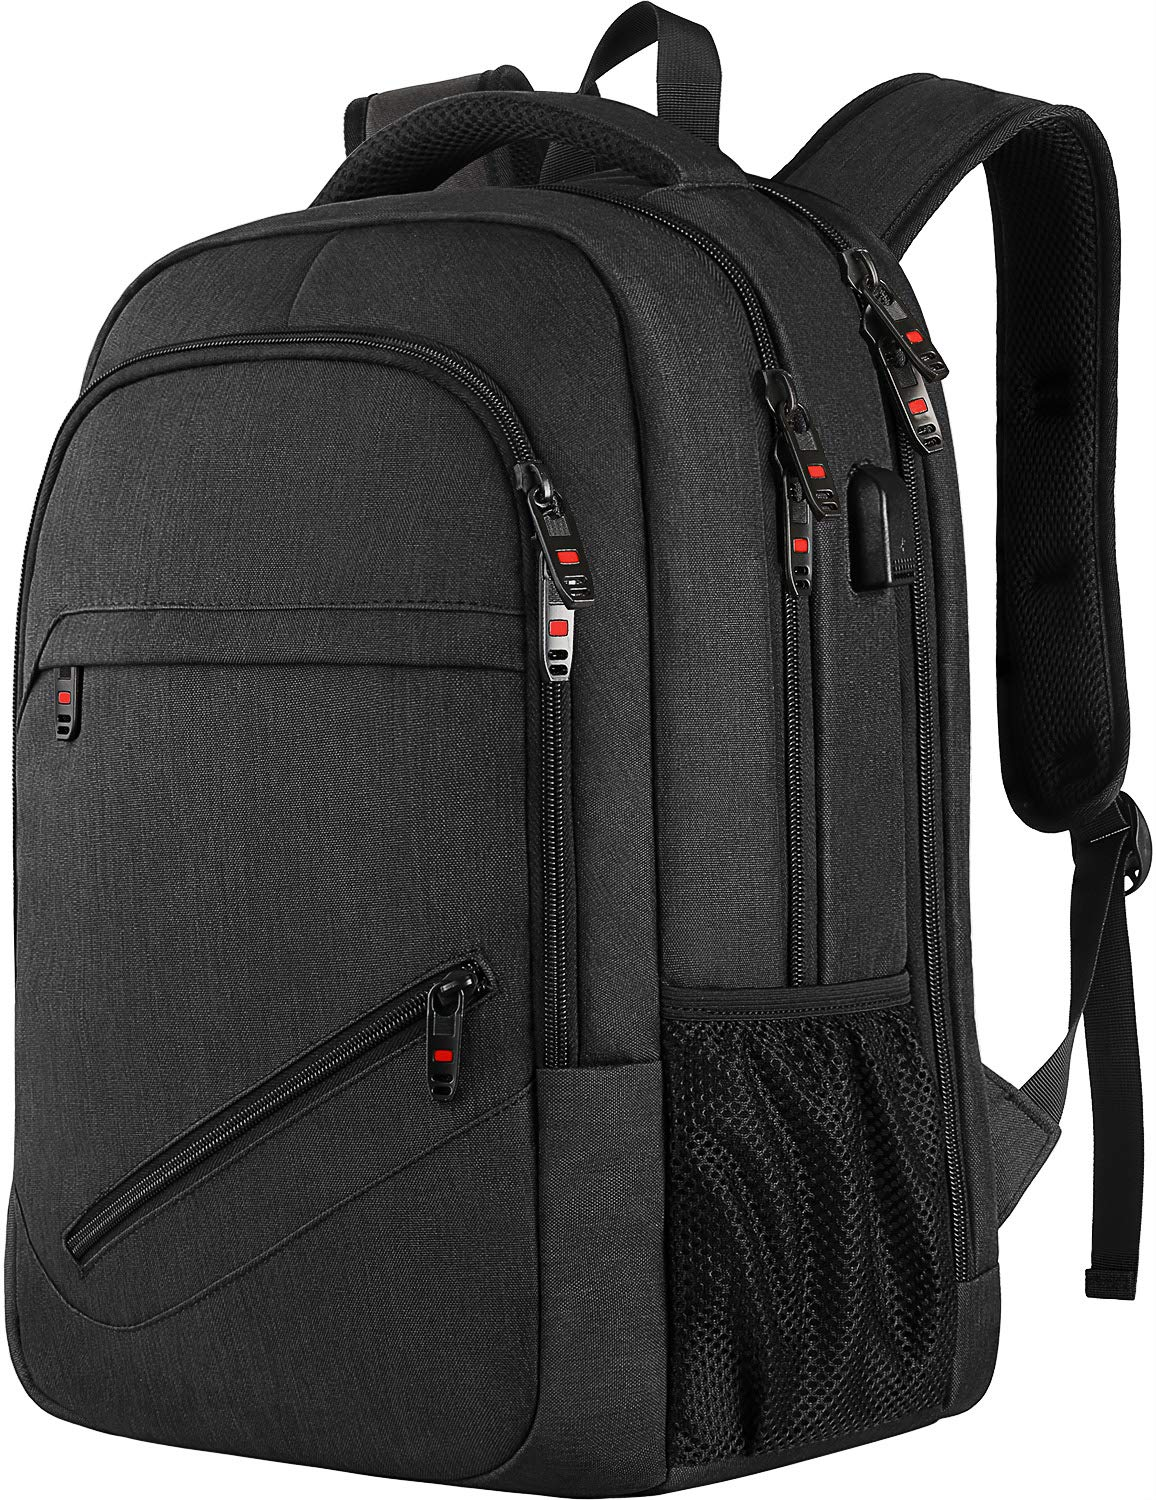 Laptop Backpack,Business Travel Laptop Backpack with USB Charging Port,Water Resistant High School Student Computer Bookbag Fits 15.6 Inch Laptop-Black